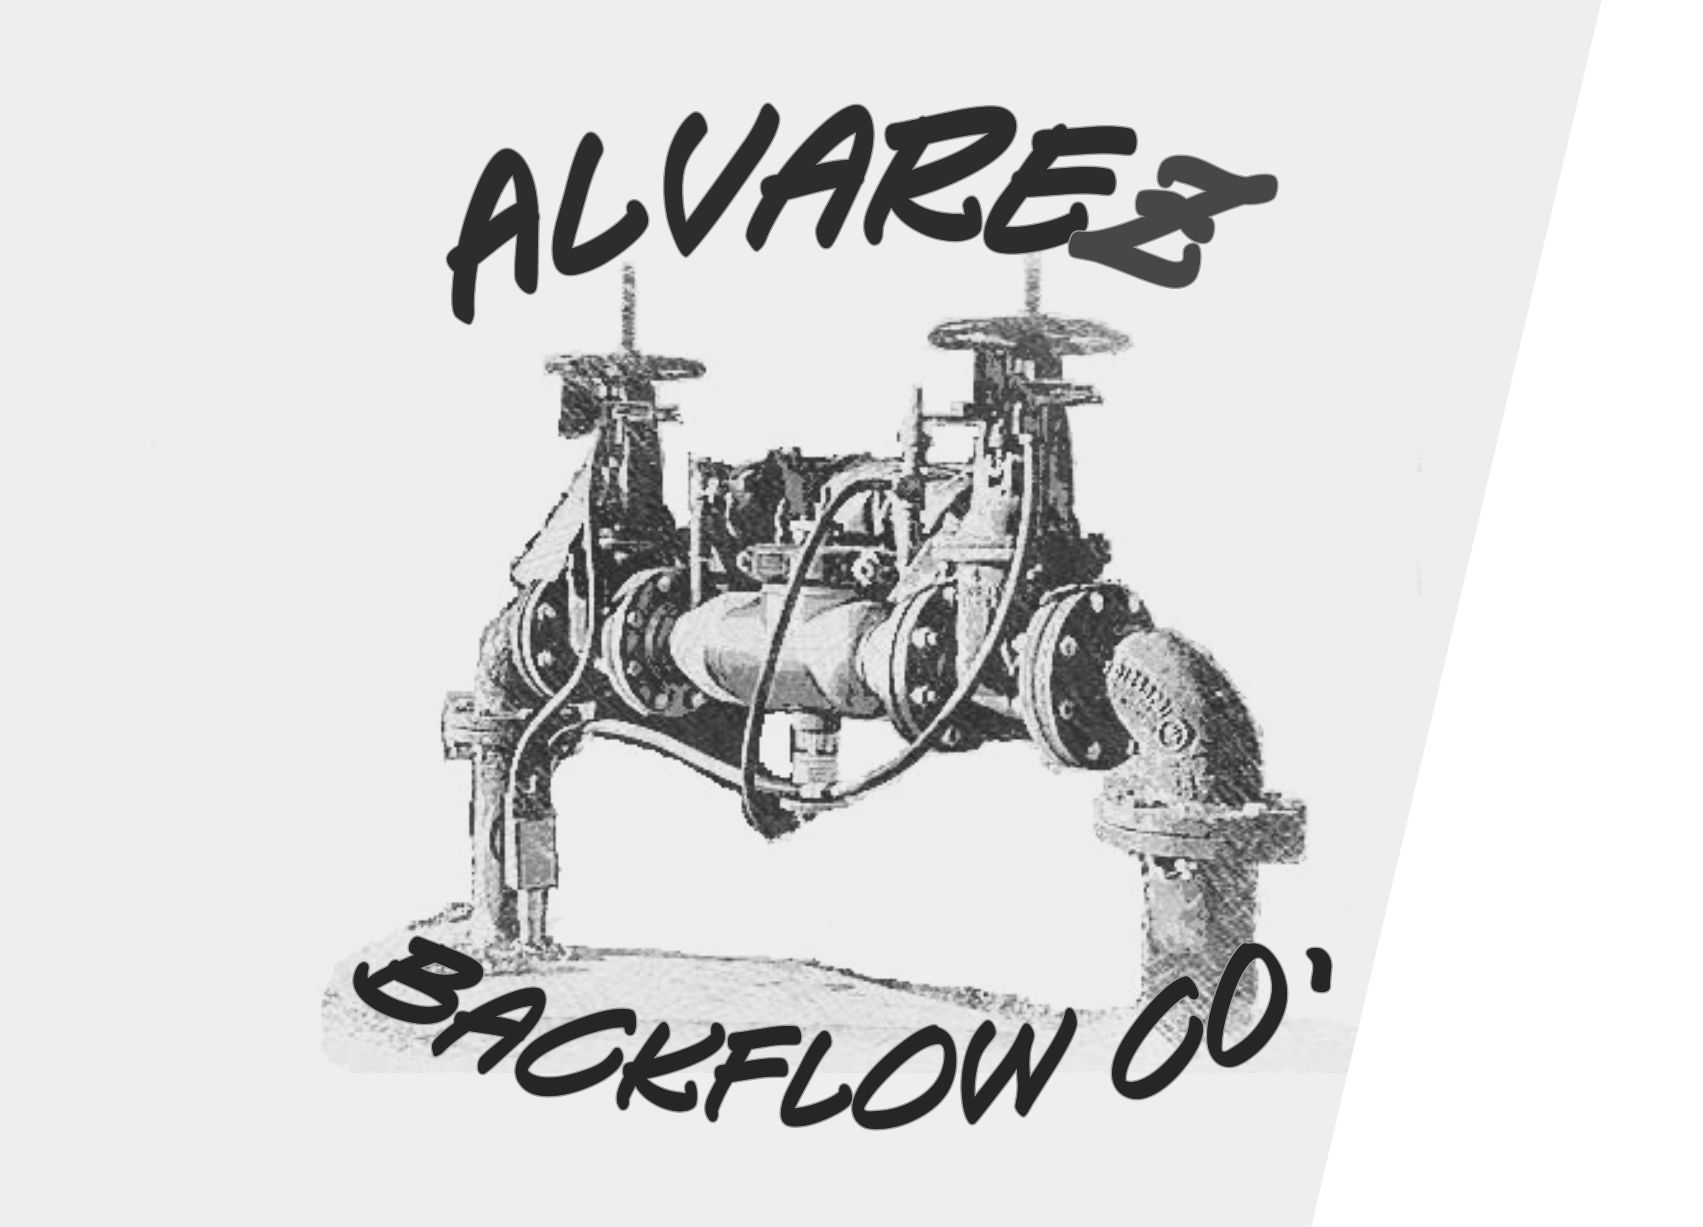 Alvarez Backflow Co.